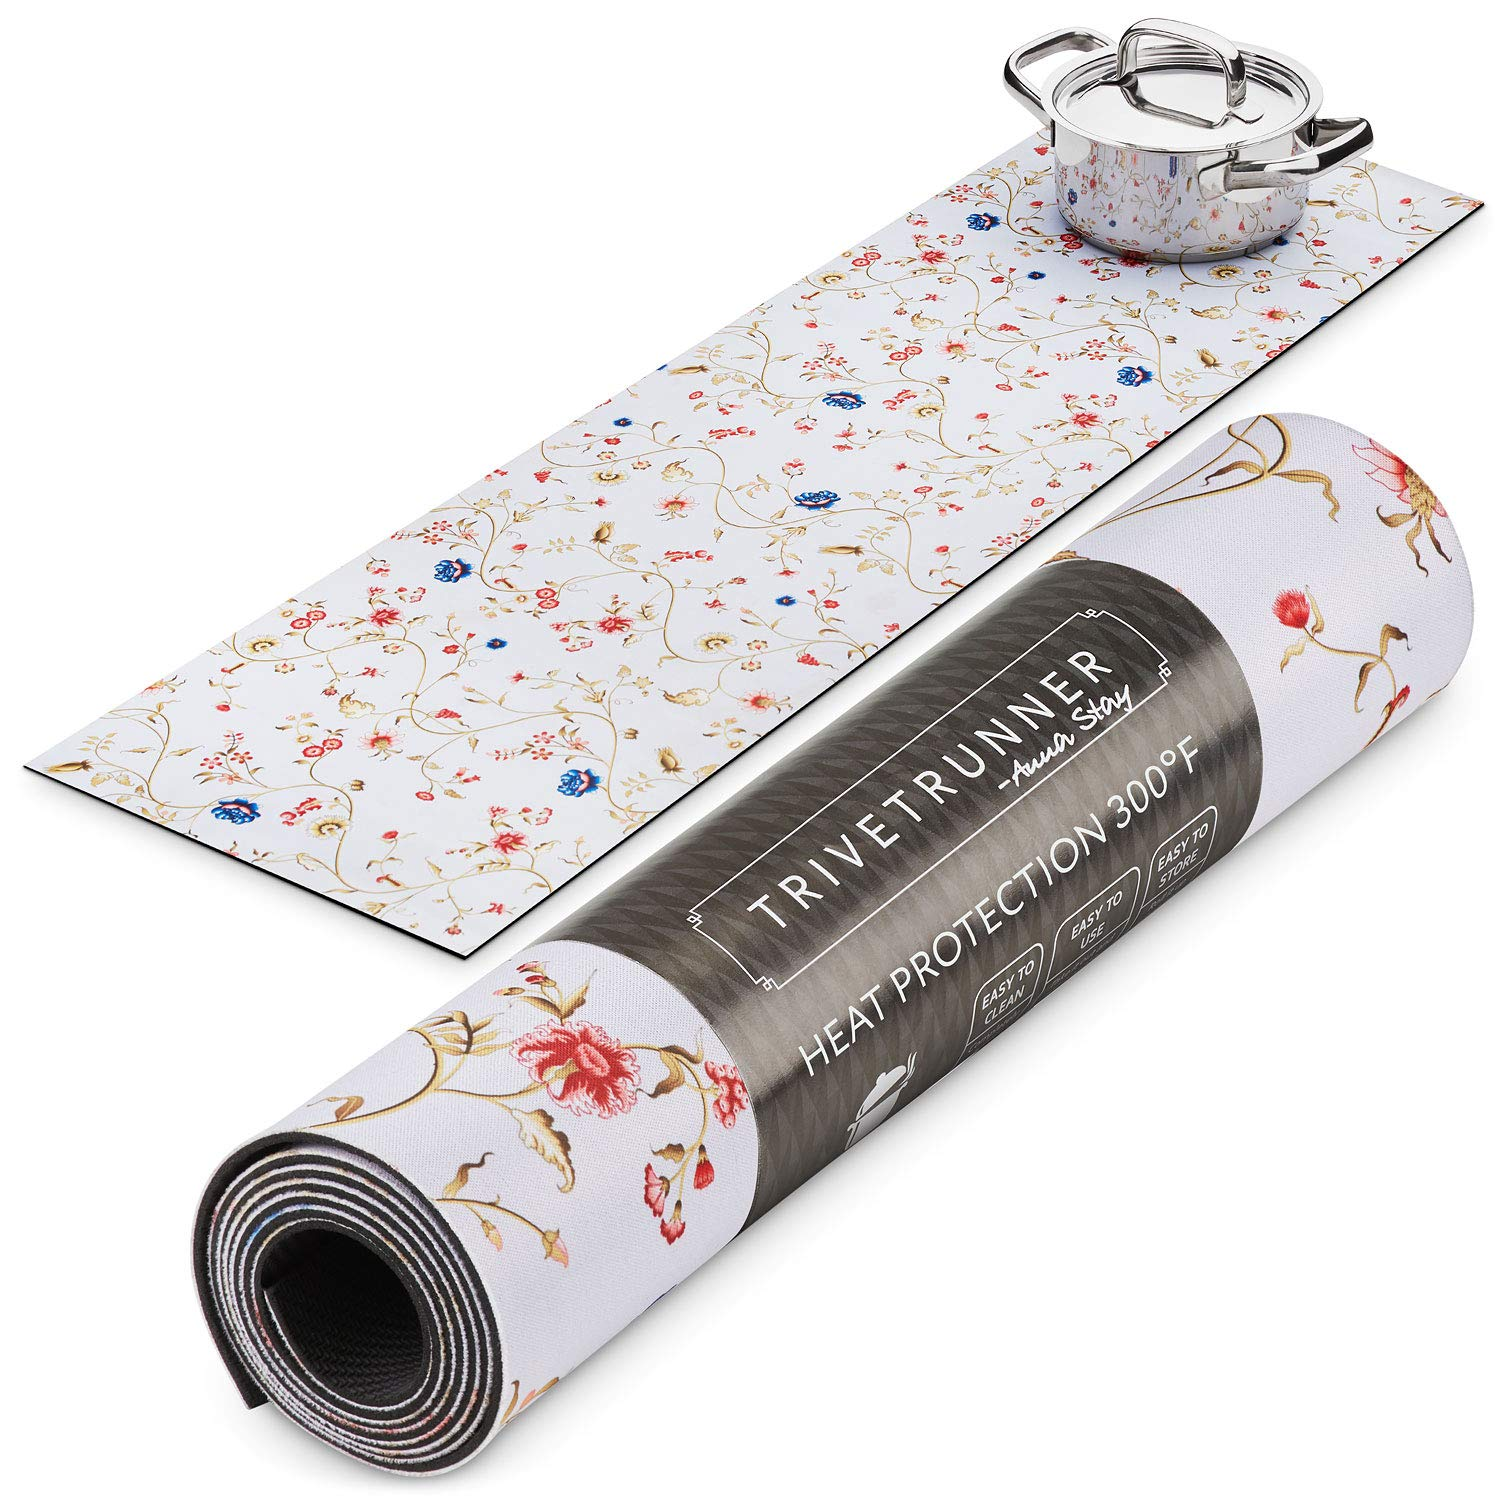 Trivetrunner :Decorative Trivet and Kitchen Table Runners Handles Heat Up to 300F, Anti Slip, Hand Washable, and Convenient for Hot Dishes and Pots,Hand Washable (spring floral)